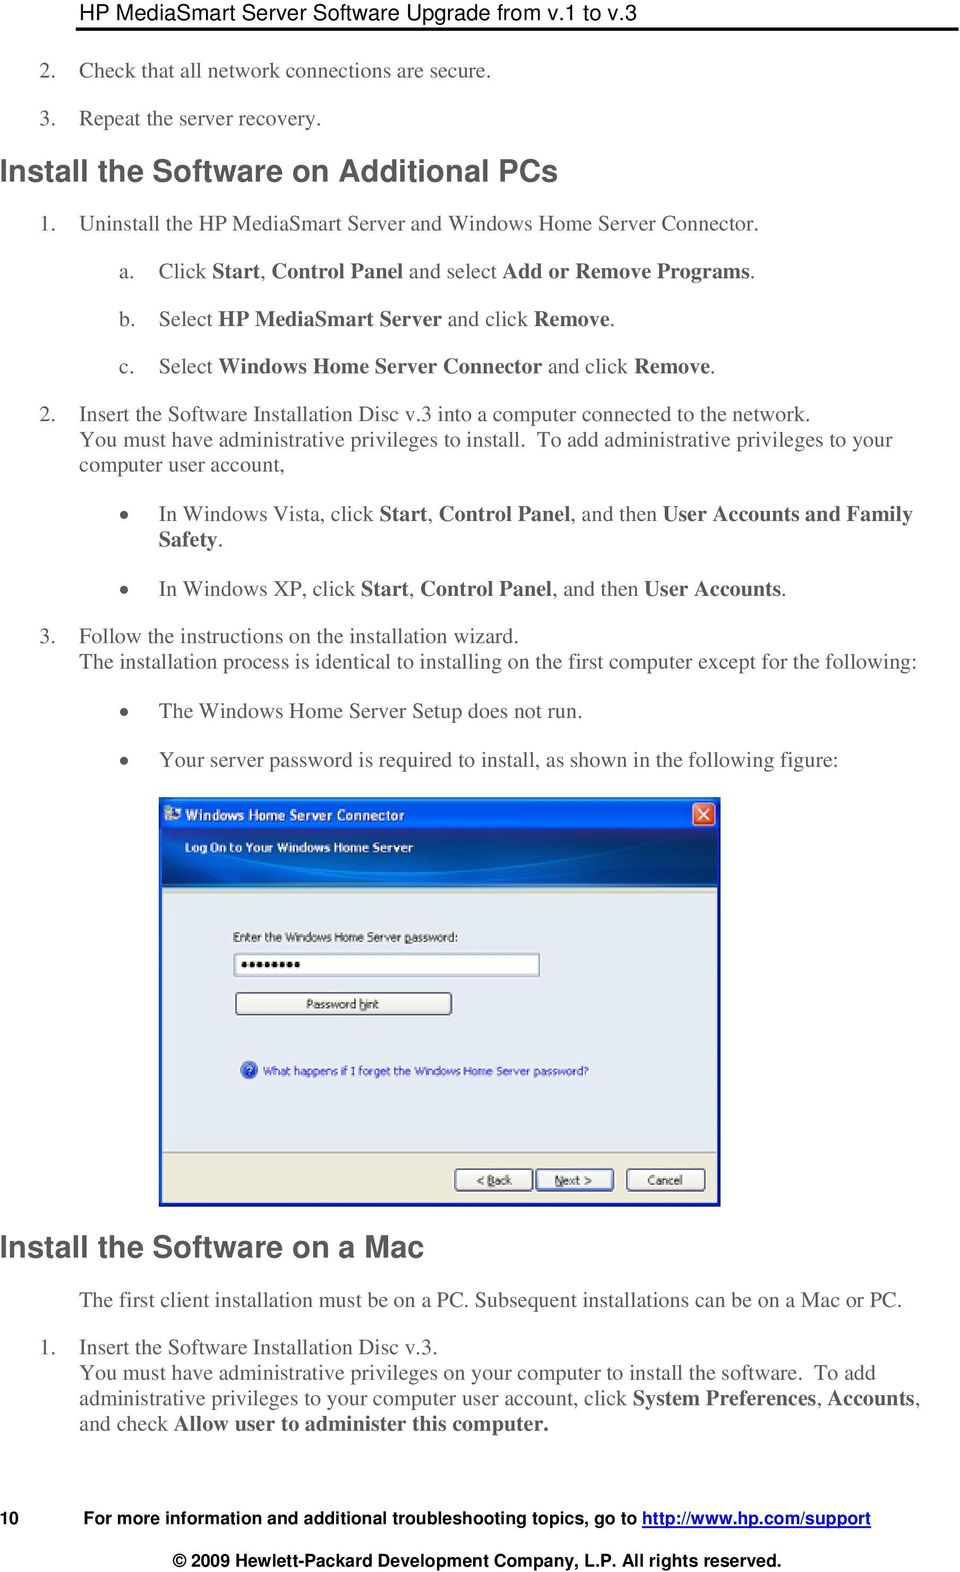 ick Remove. c. Select Windows Home Server Connector and click Remove. 2. Insert the Software Installation Disc v.3 into a computer connected to the network.